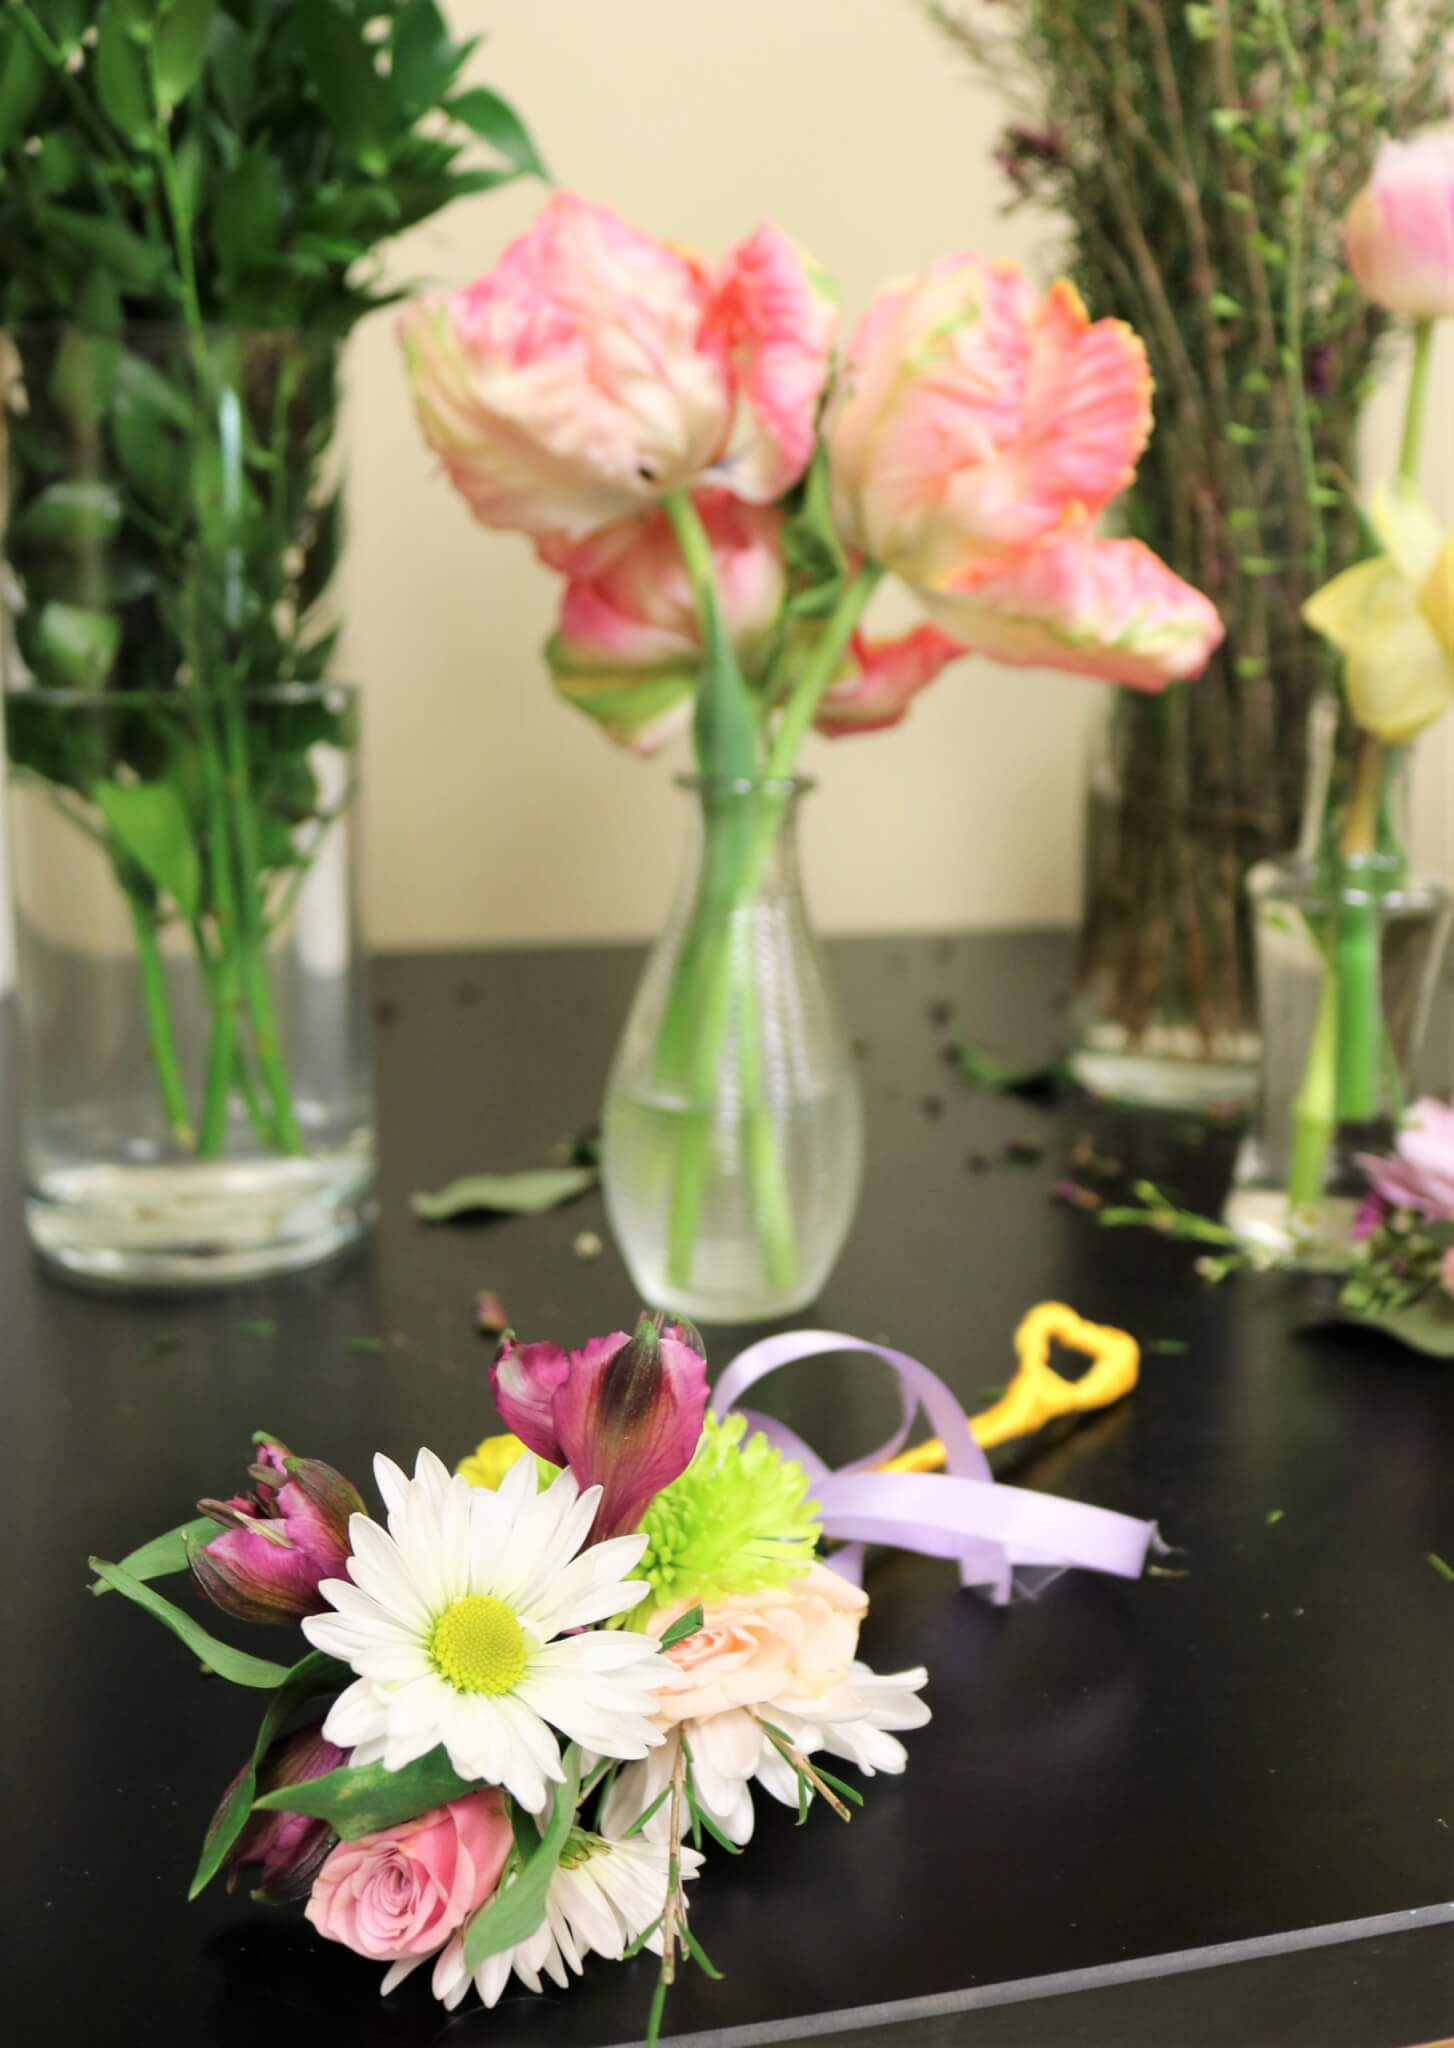 Small bundle of flowers laying on a black desk with vases of flowers in the background